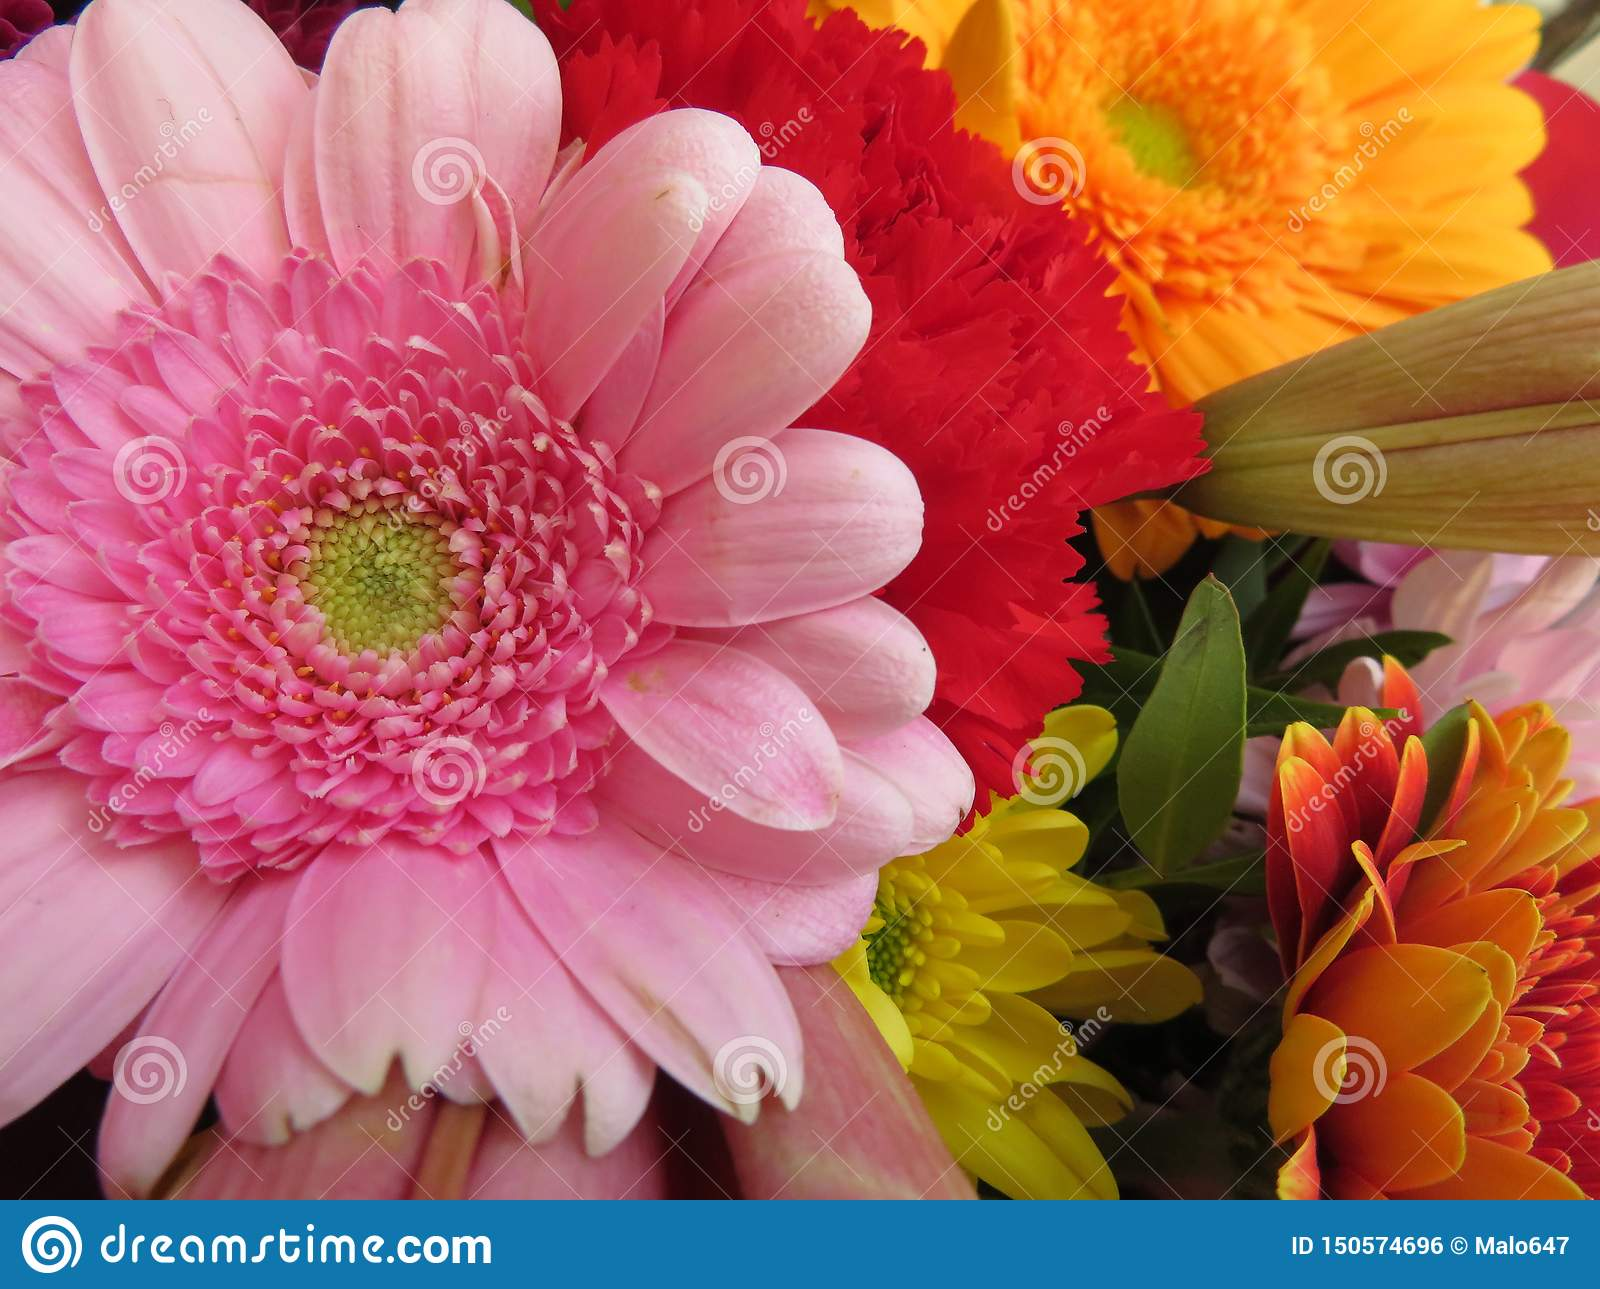 Beautiful flowers of intense colors and of great beauty